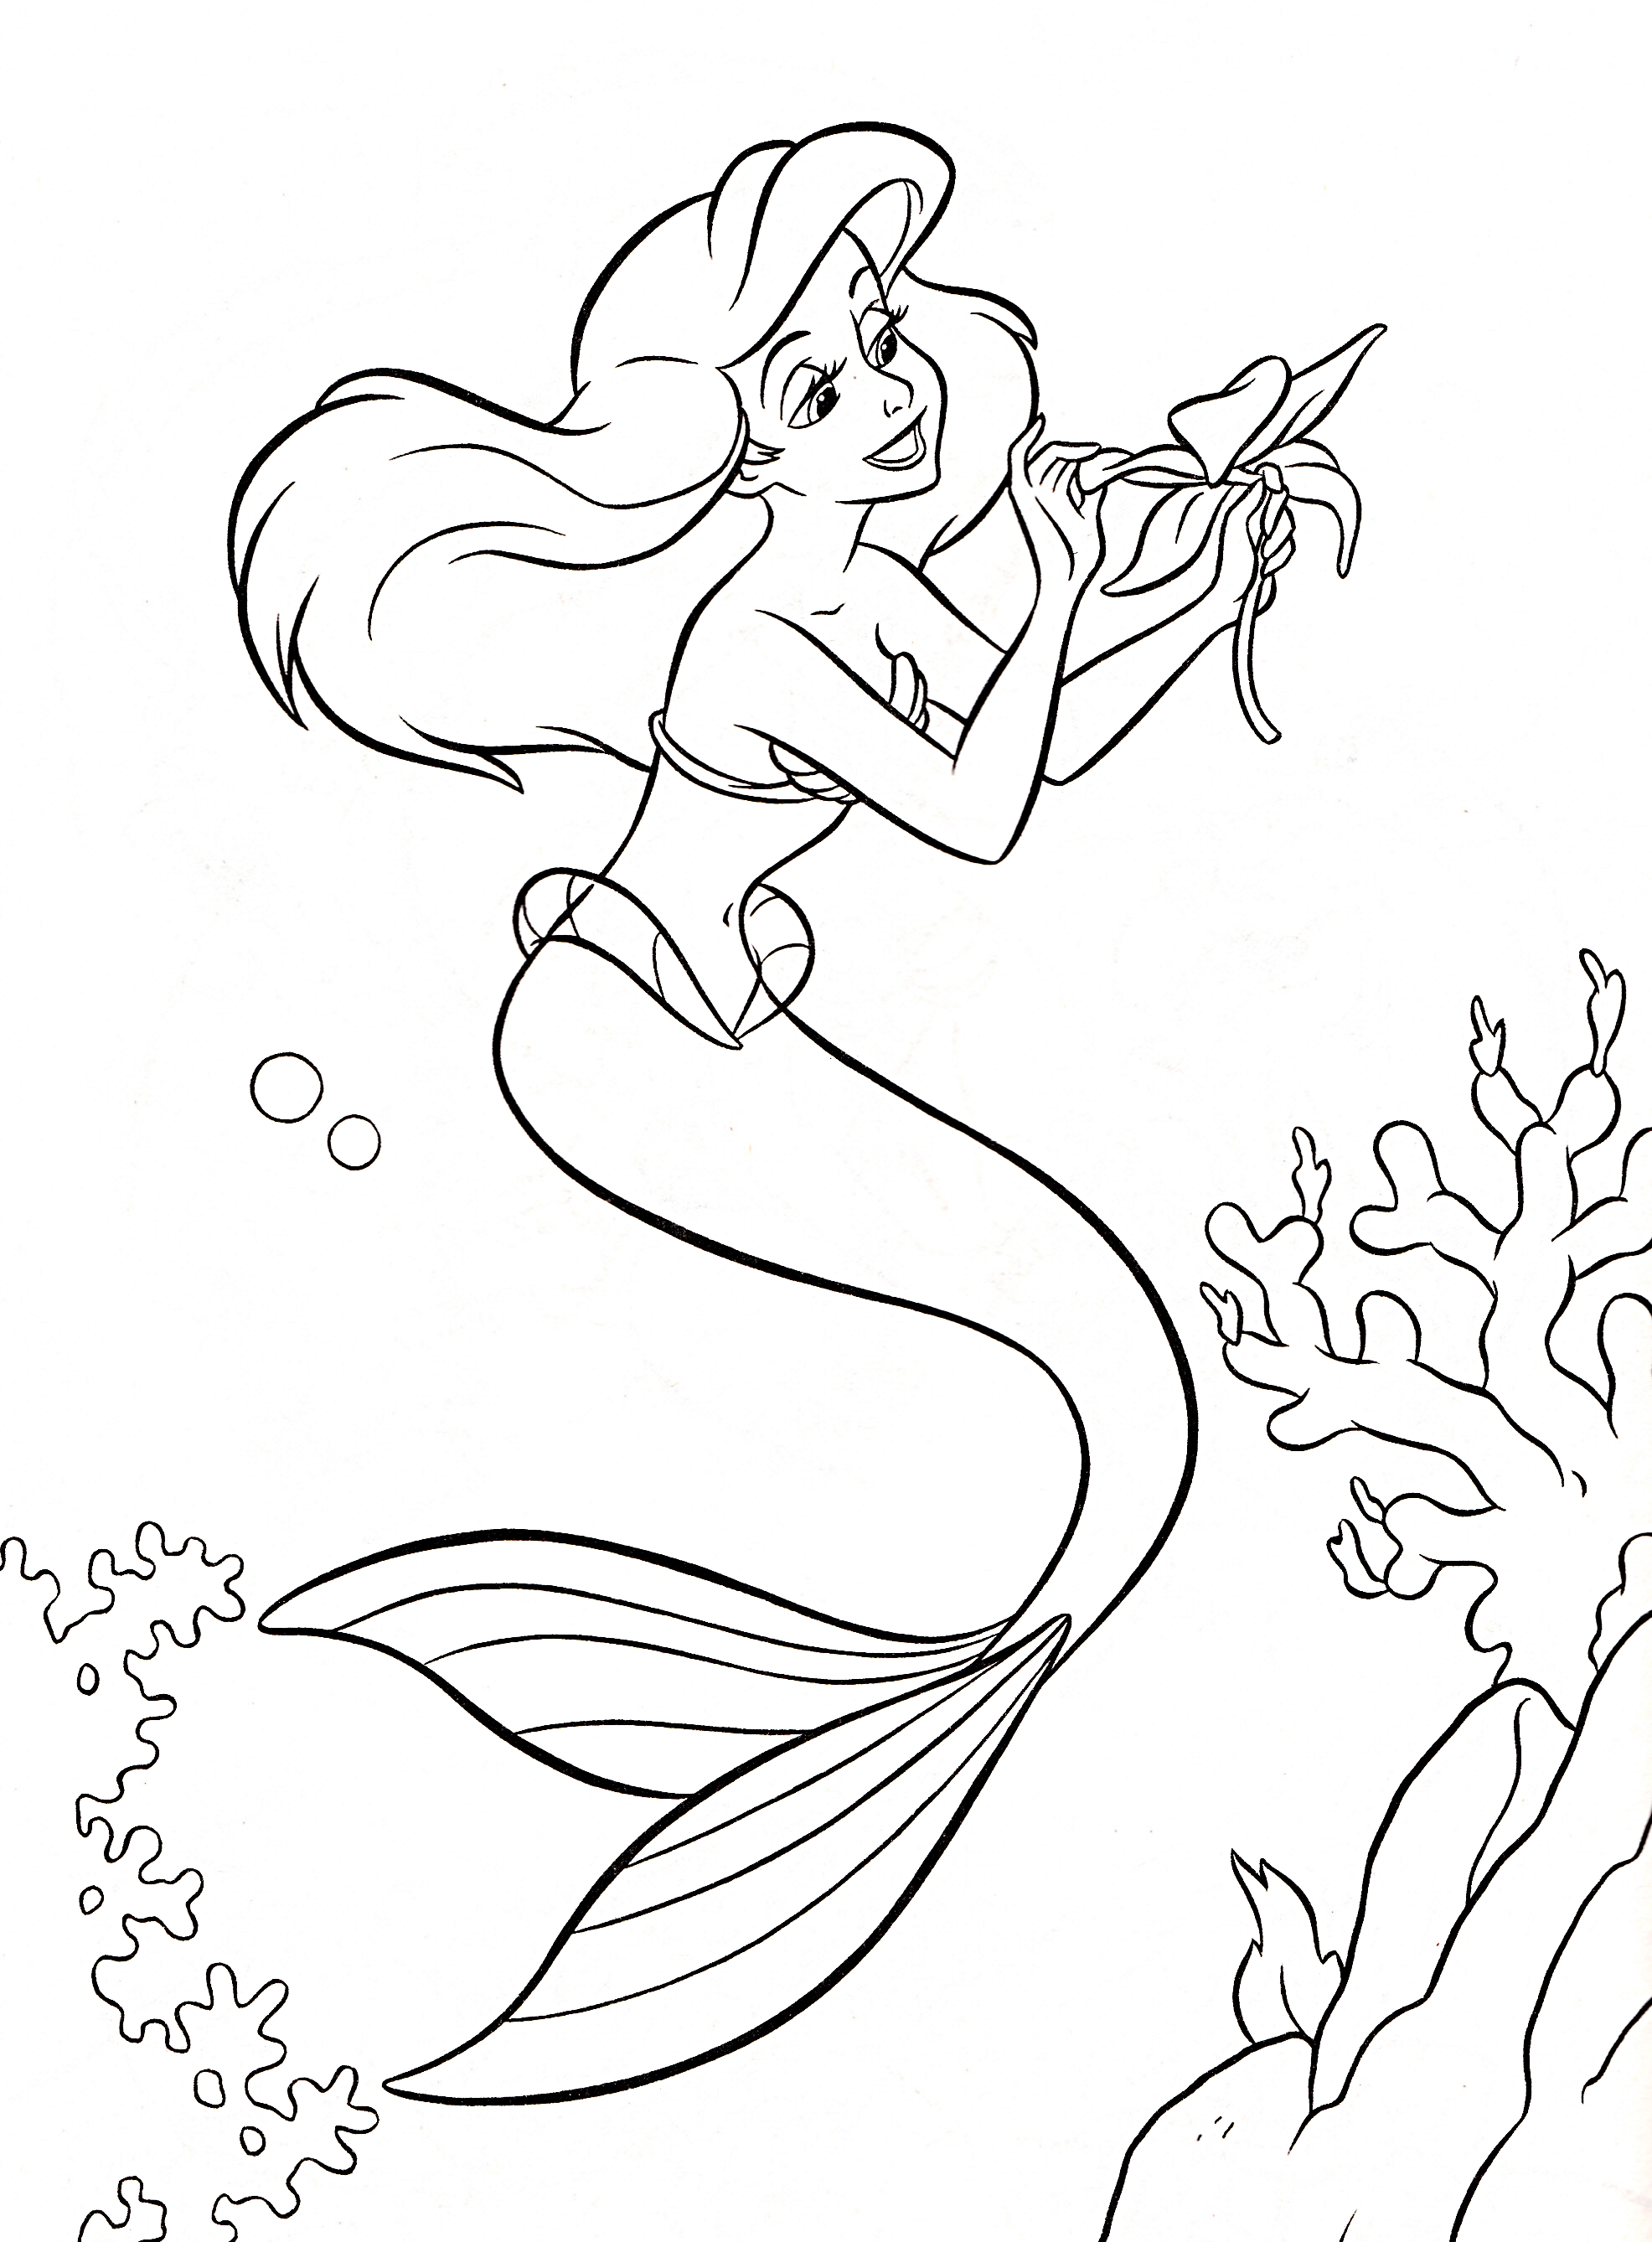 disney ariel coloring pages - photo#23